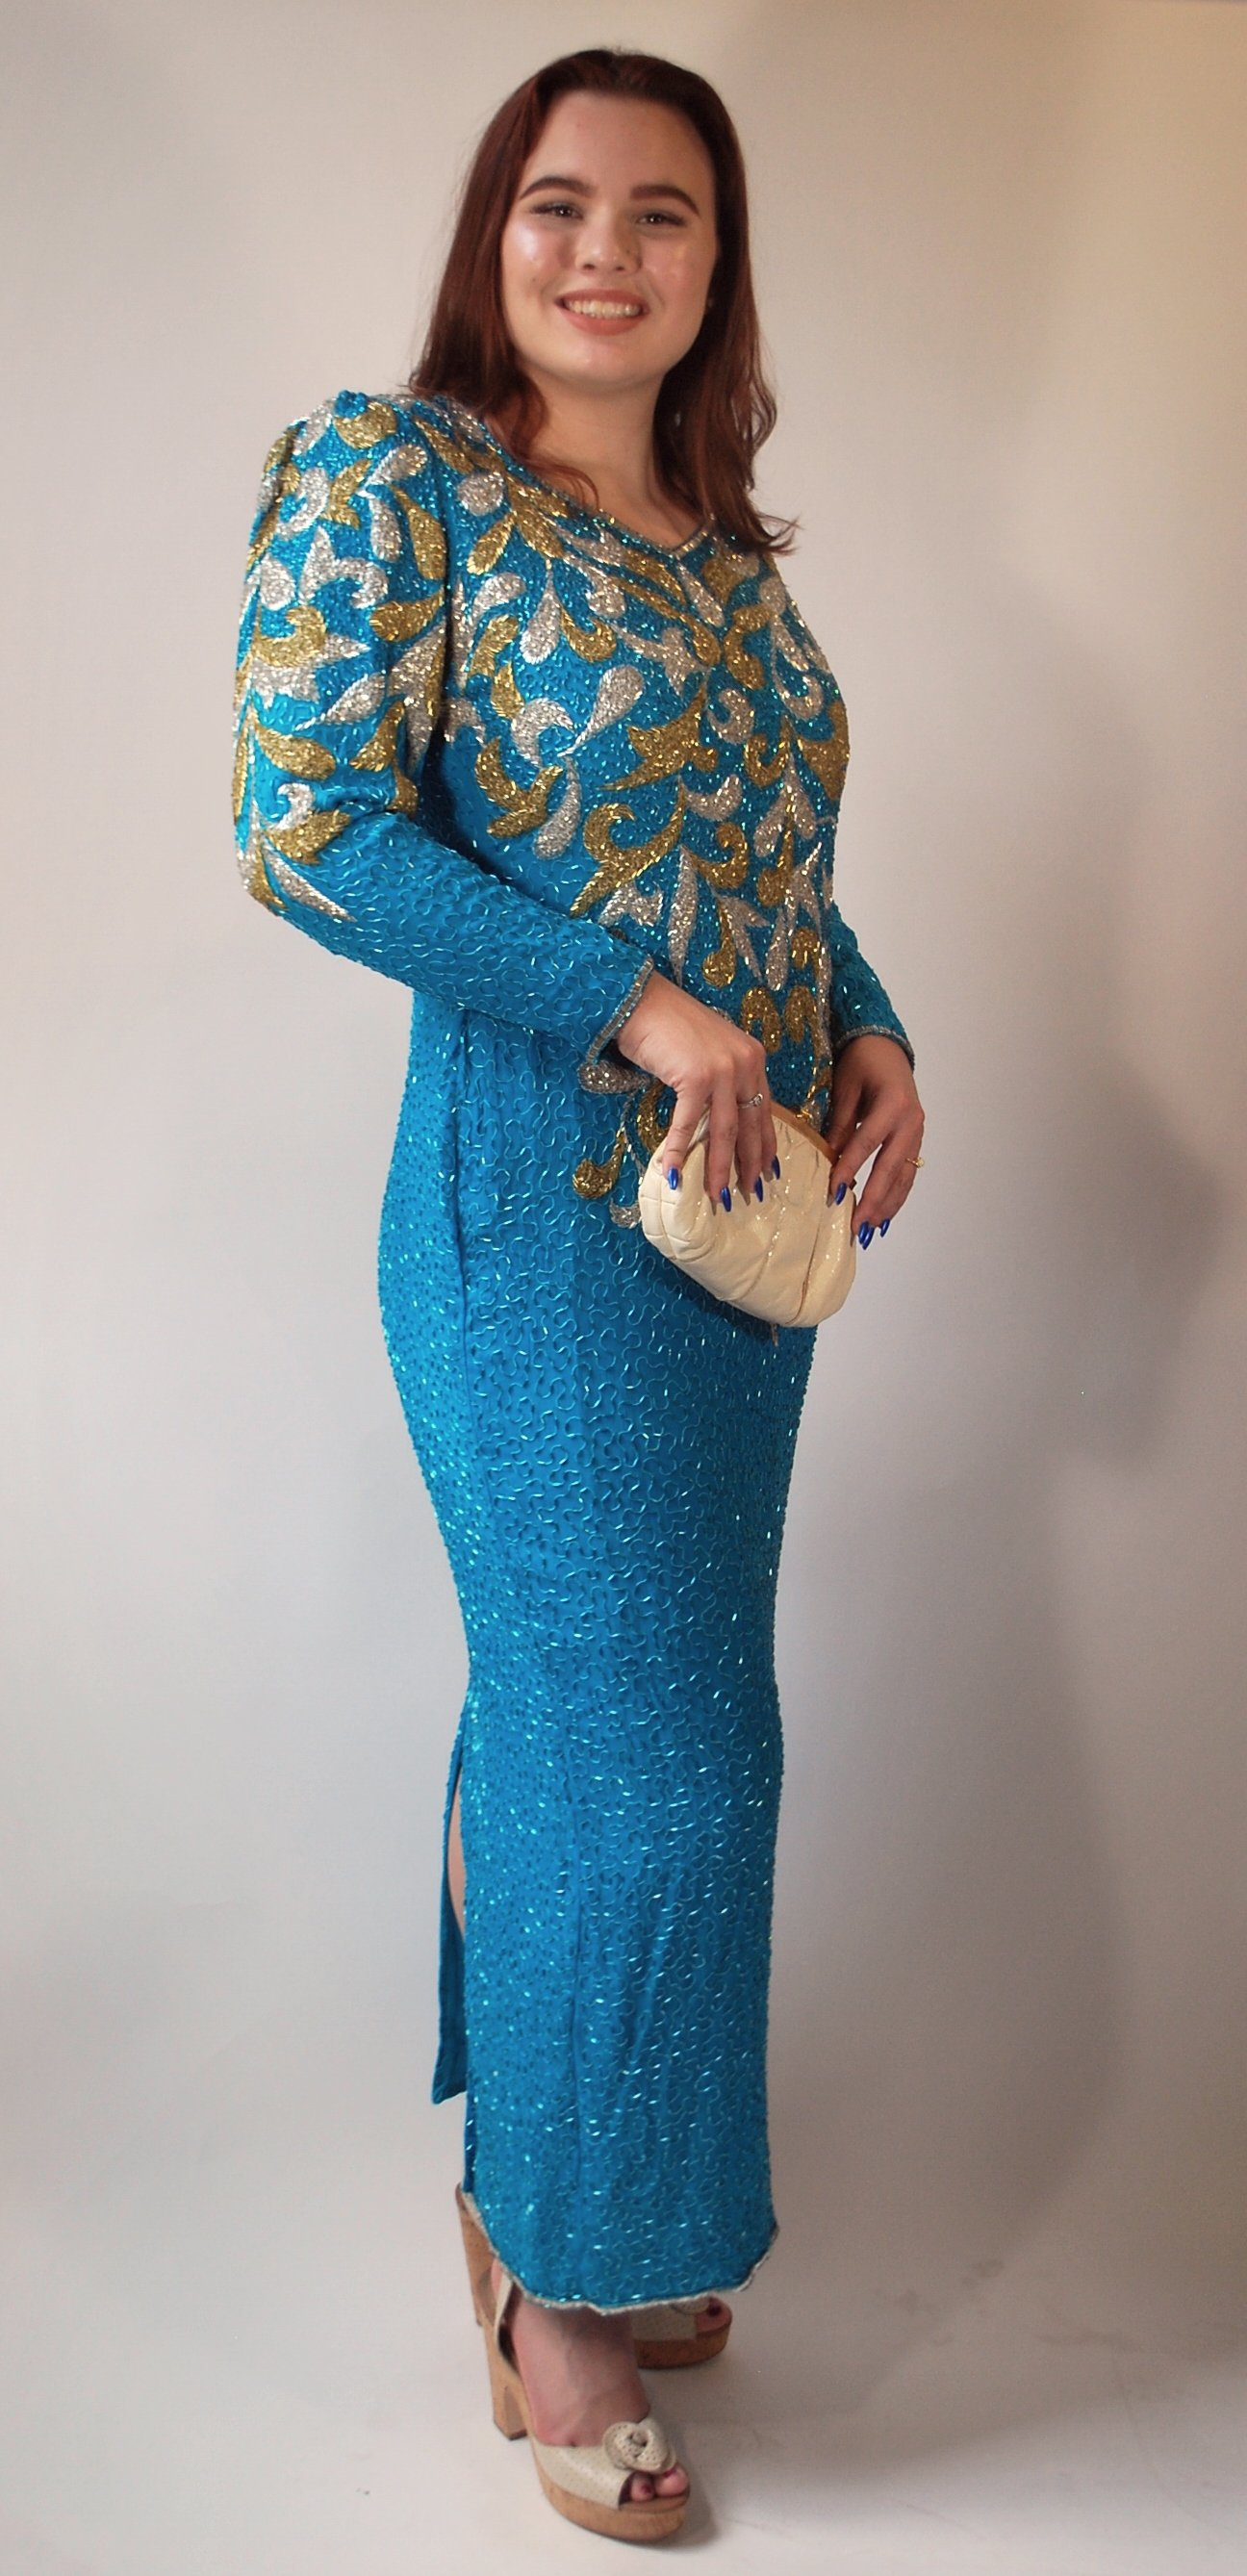 Turquoise Beaded Evening Gown - Bambi Deville